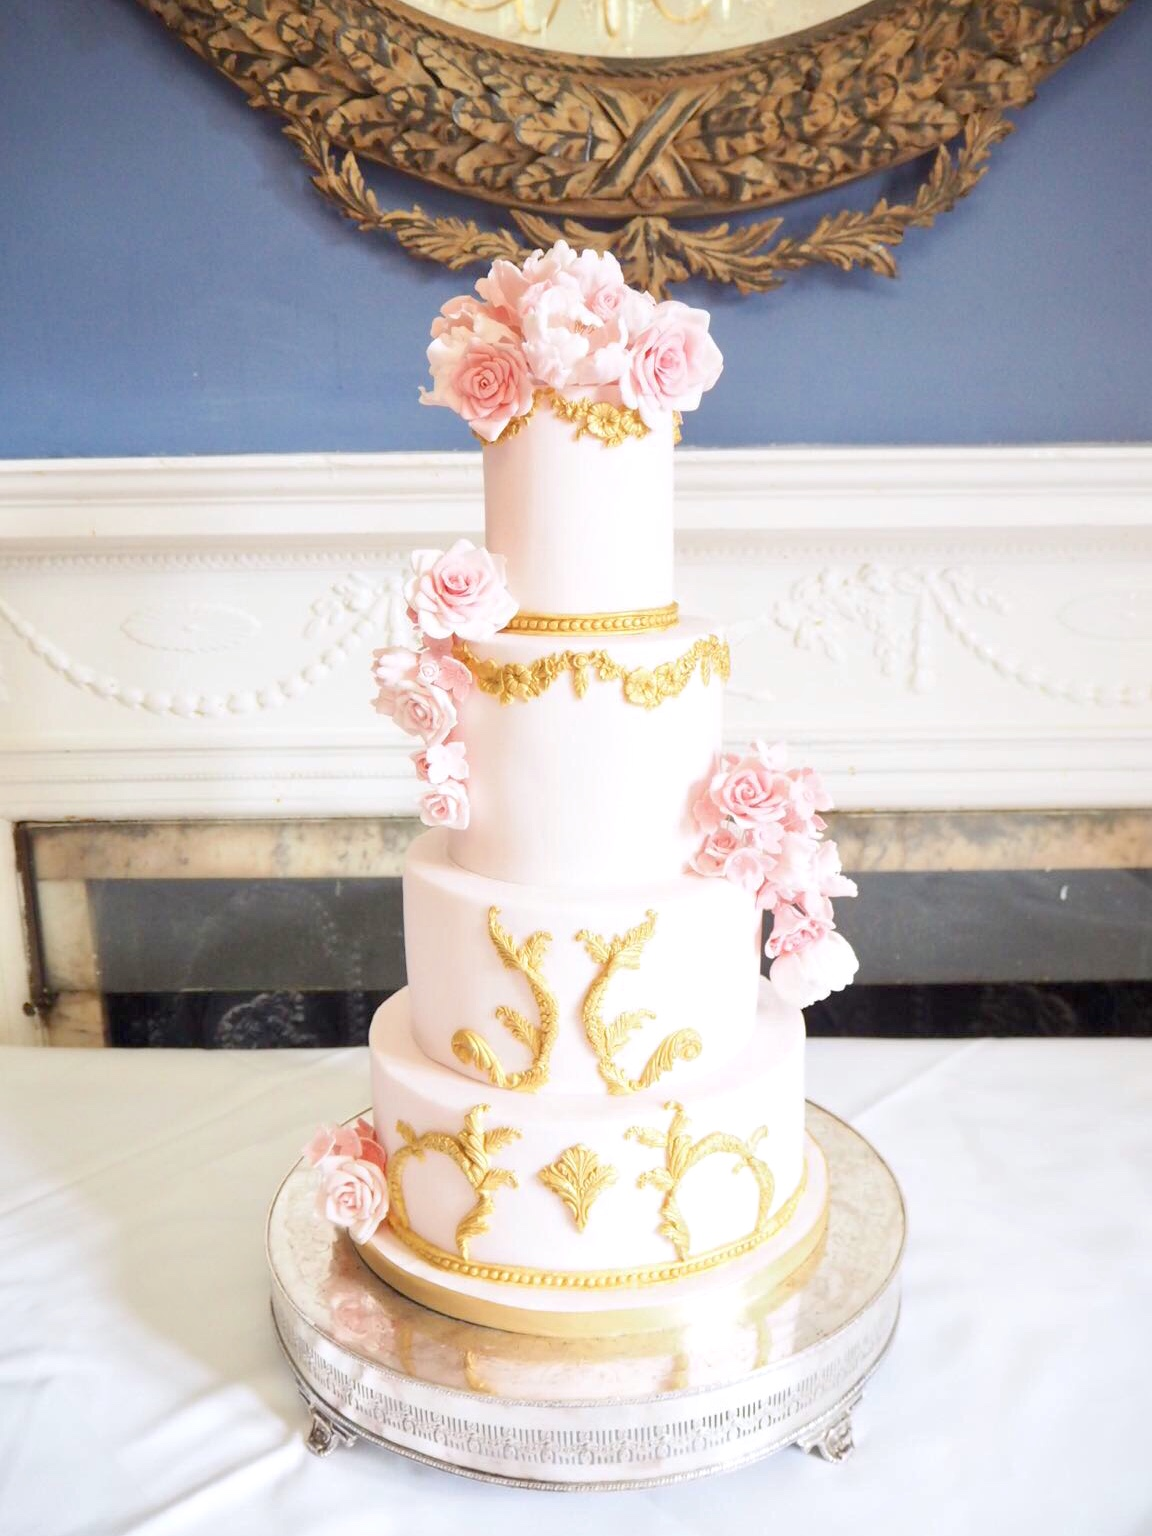 4 tier pink and gold wedding cake with sugar flowers and baroque moulding details wedding cake Cherie Kelly cakes London